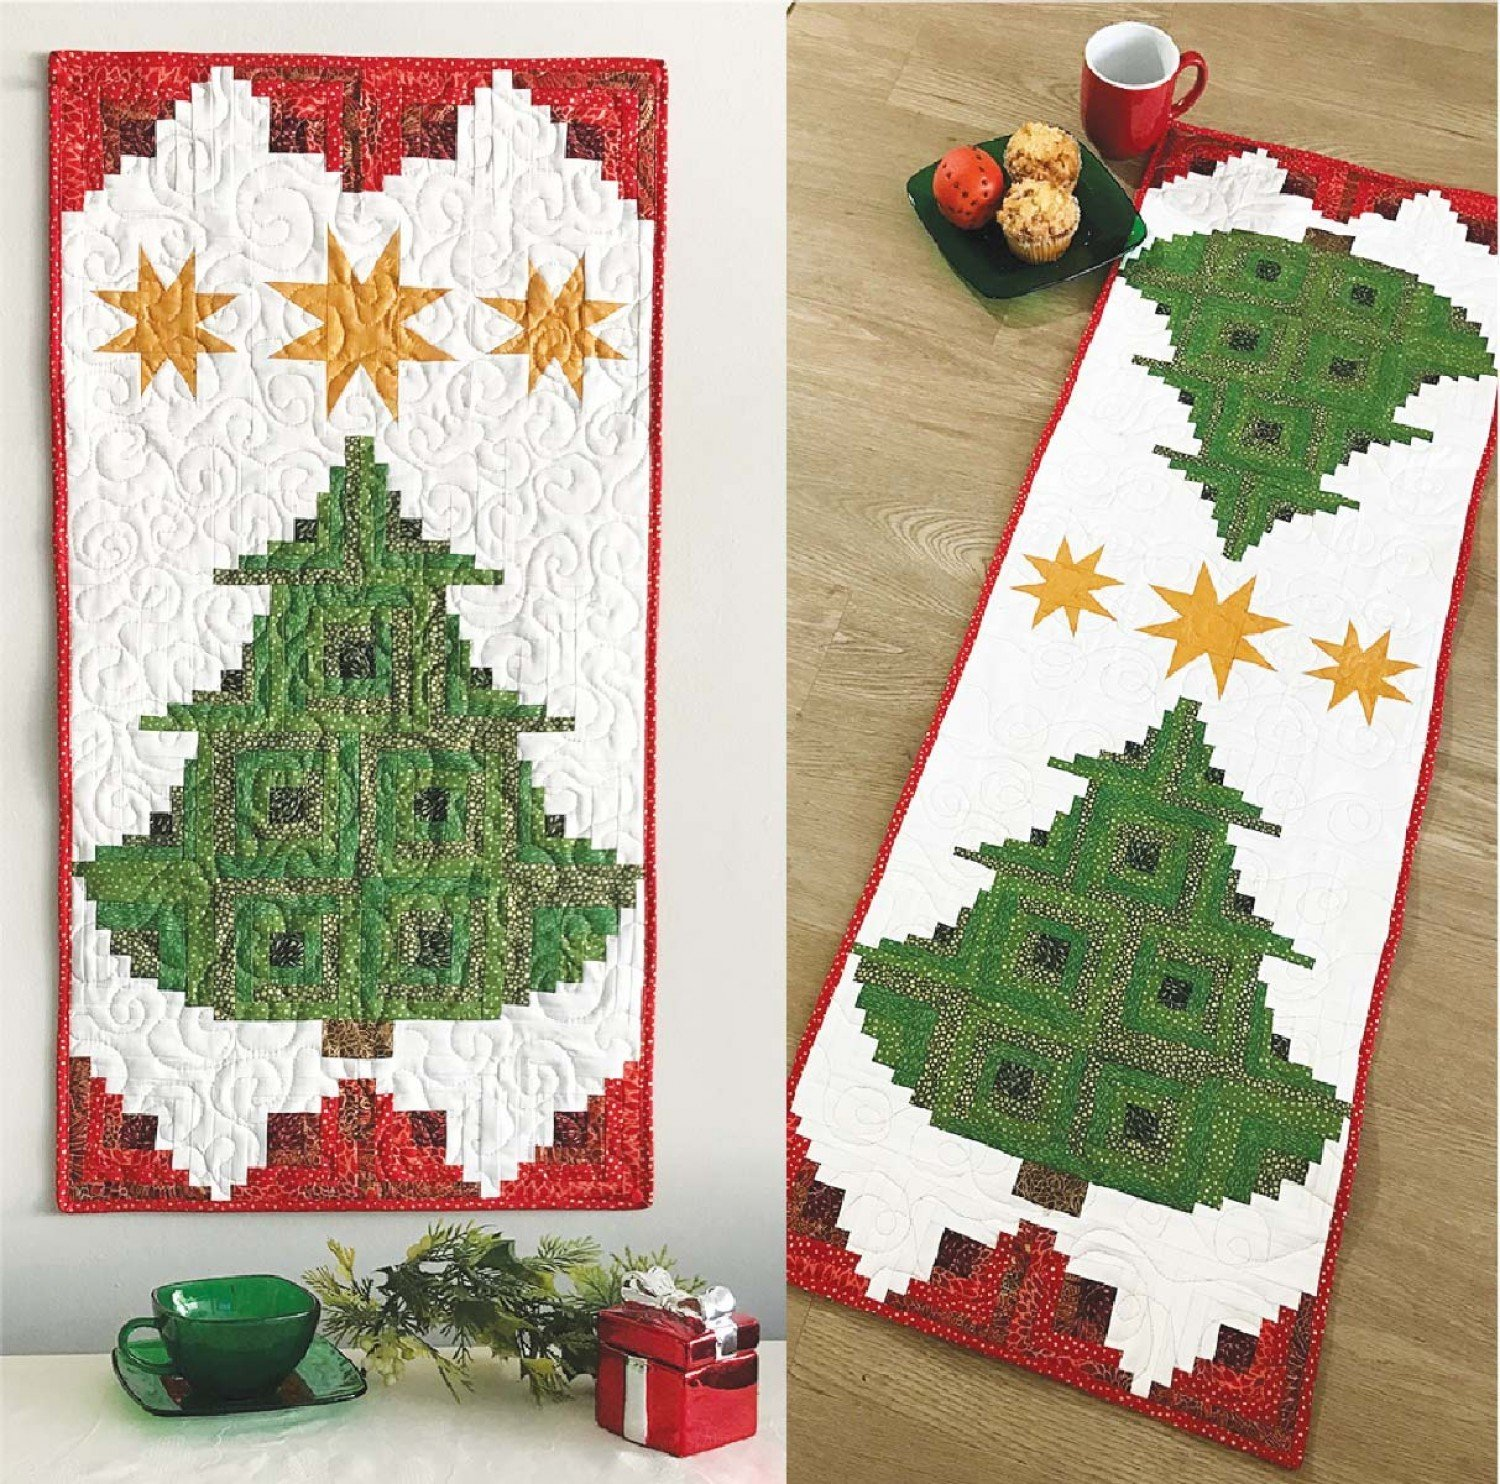 Christmas Tree Table Topper Quilt Demo - Saturday September 29 - 3:15 pm